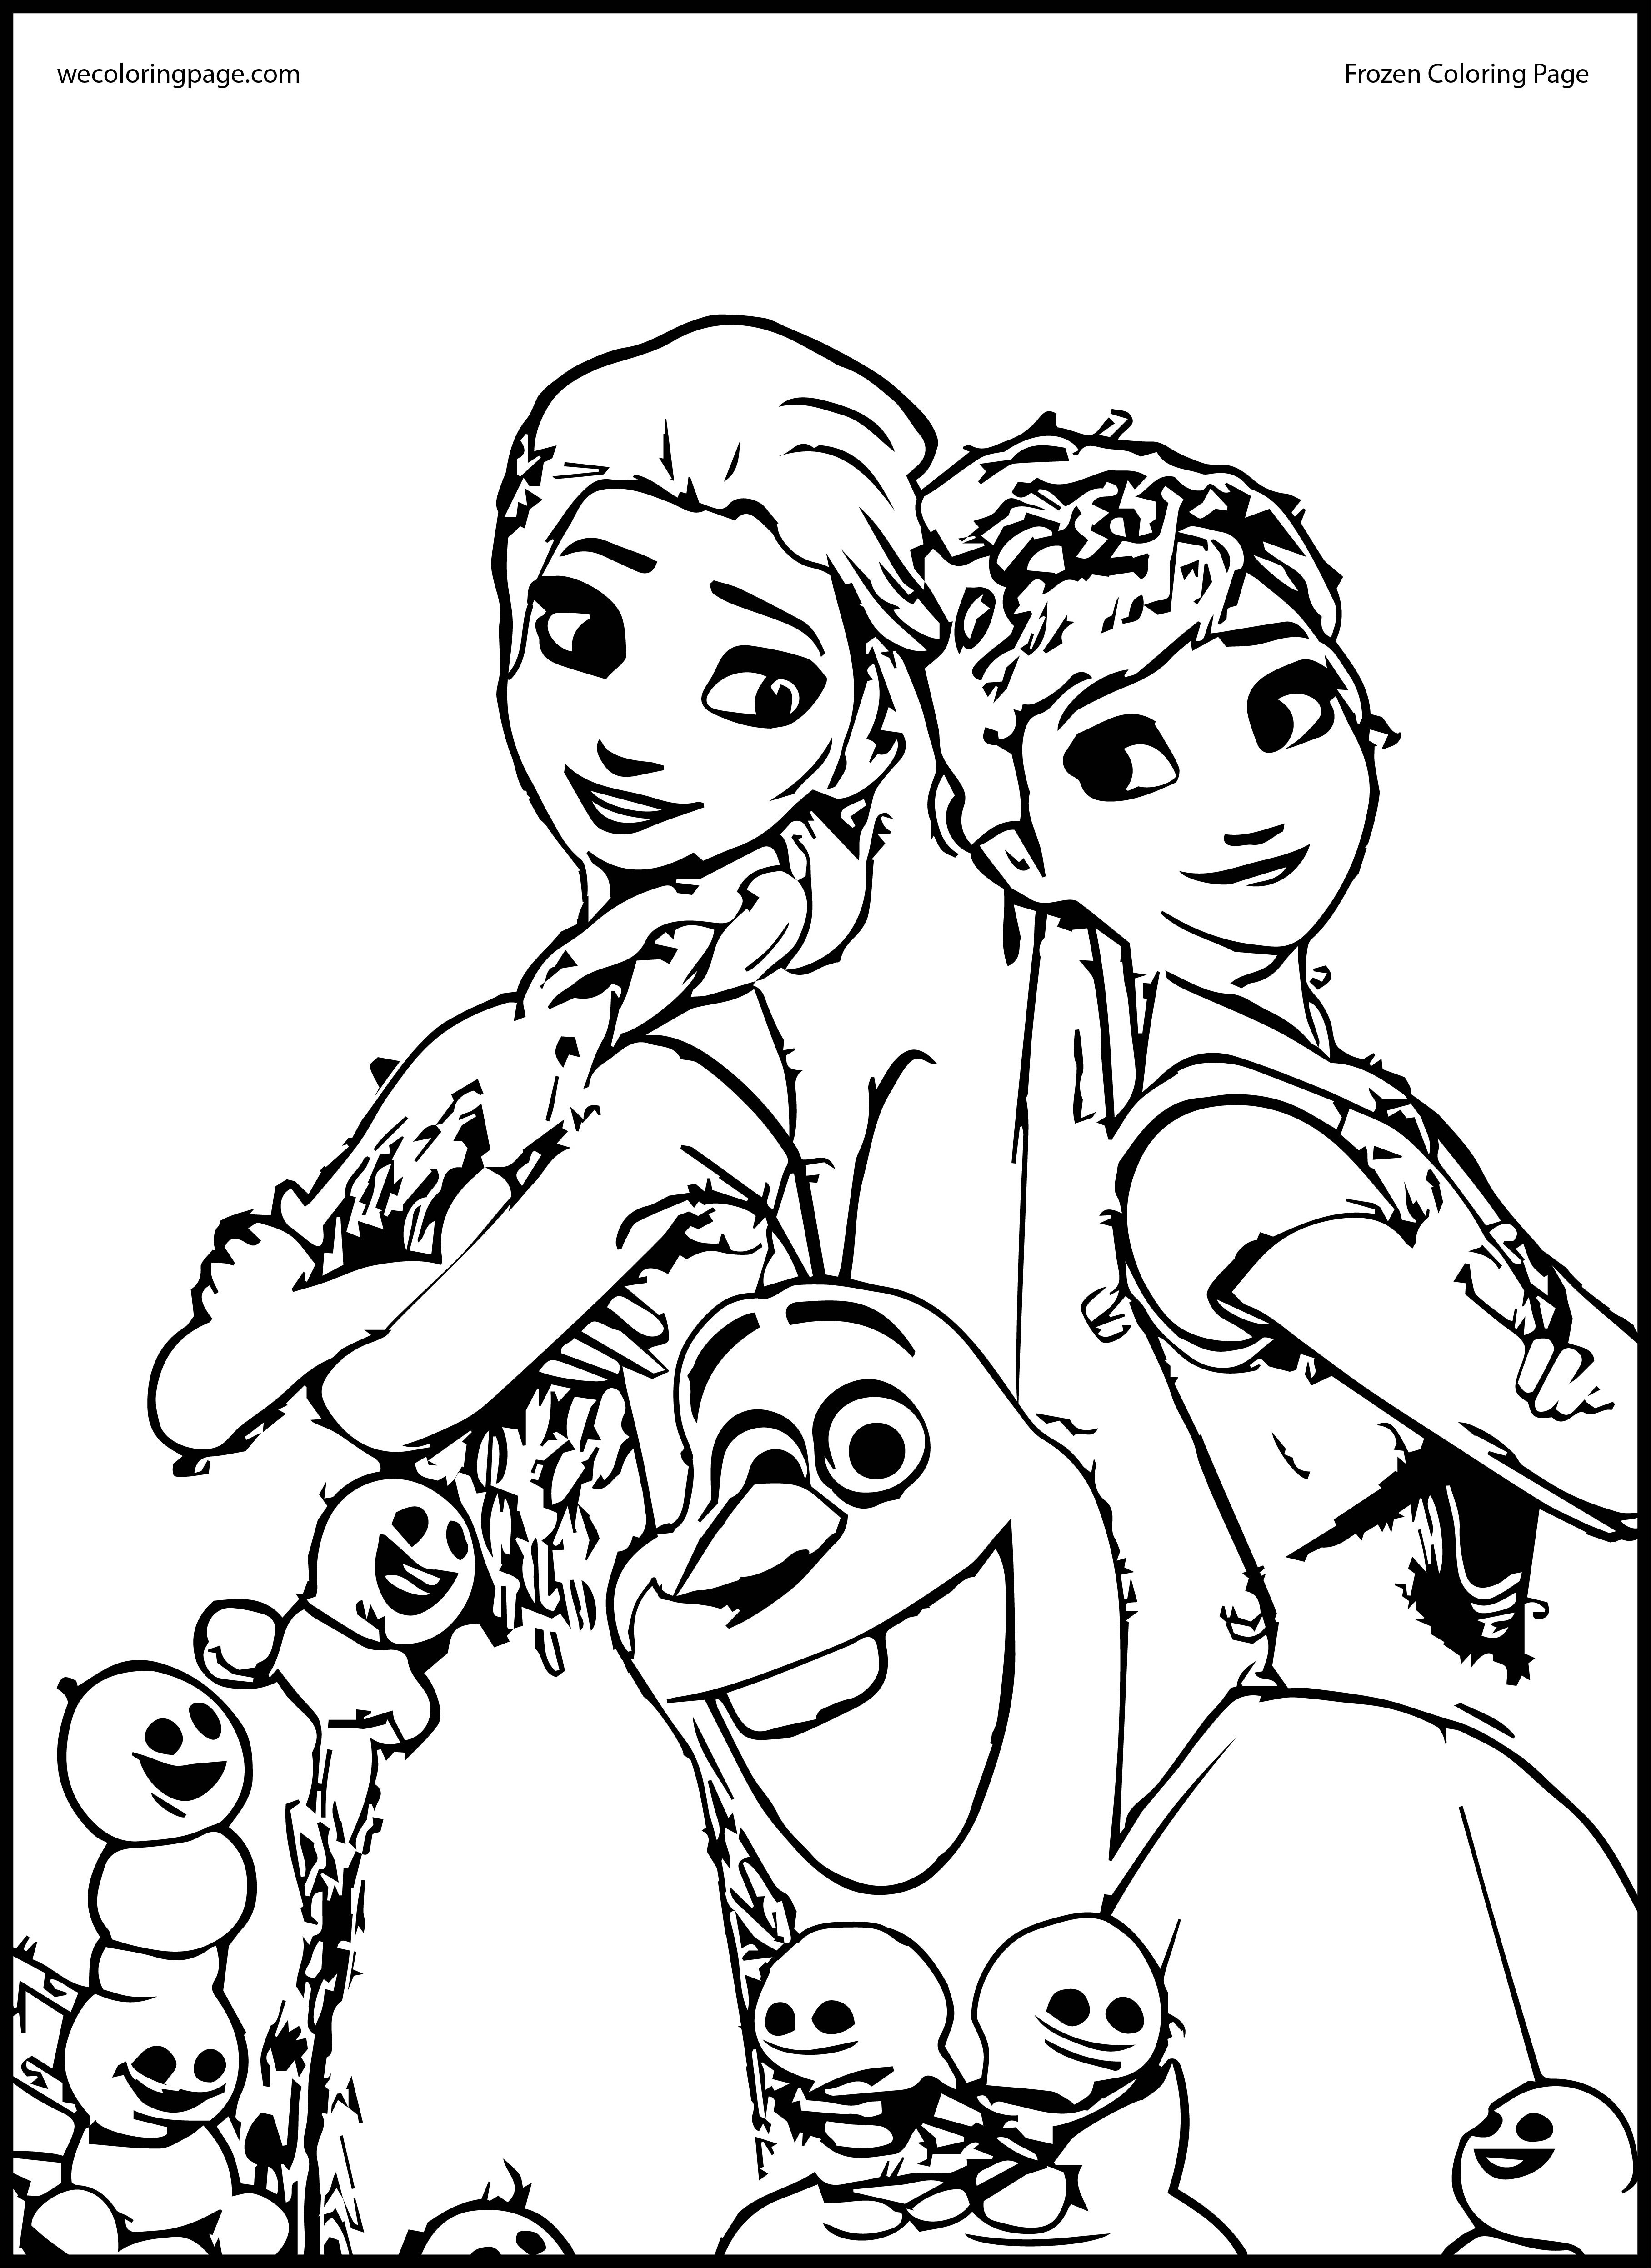 Elsa And Anna Coloring Pages - Coloring Home